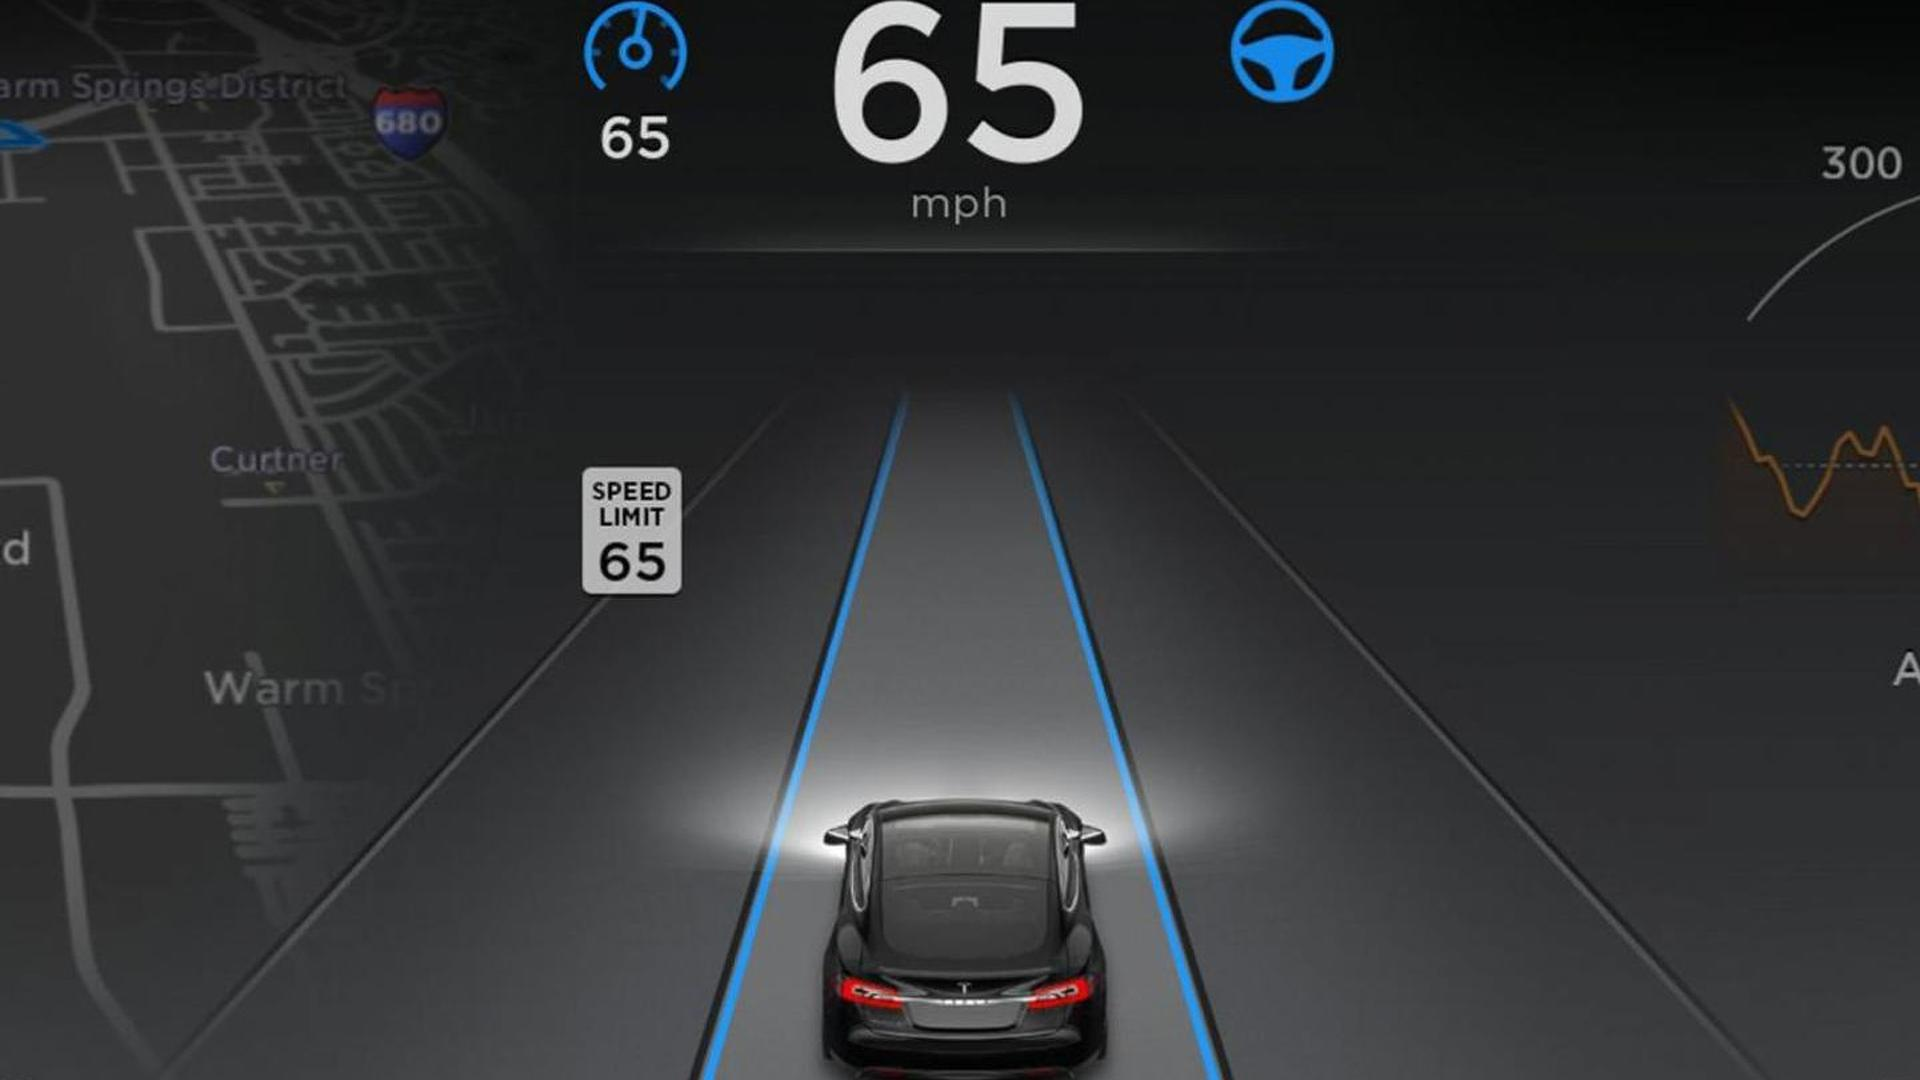 how to turn on autopilot in tesla model s